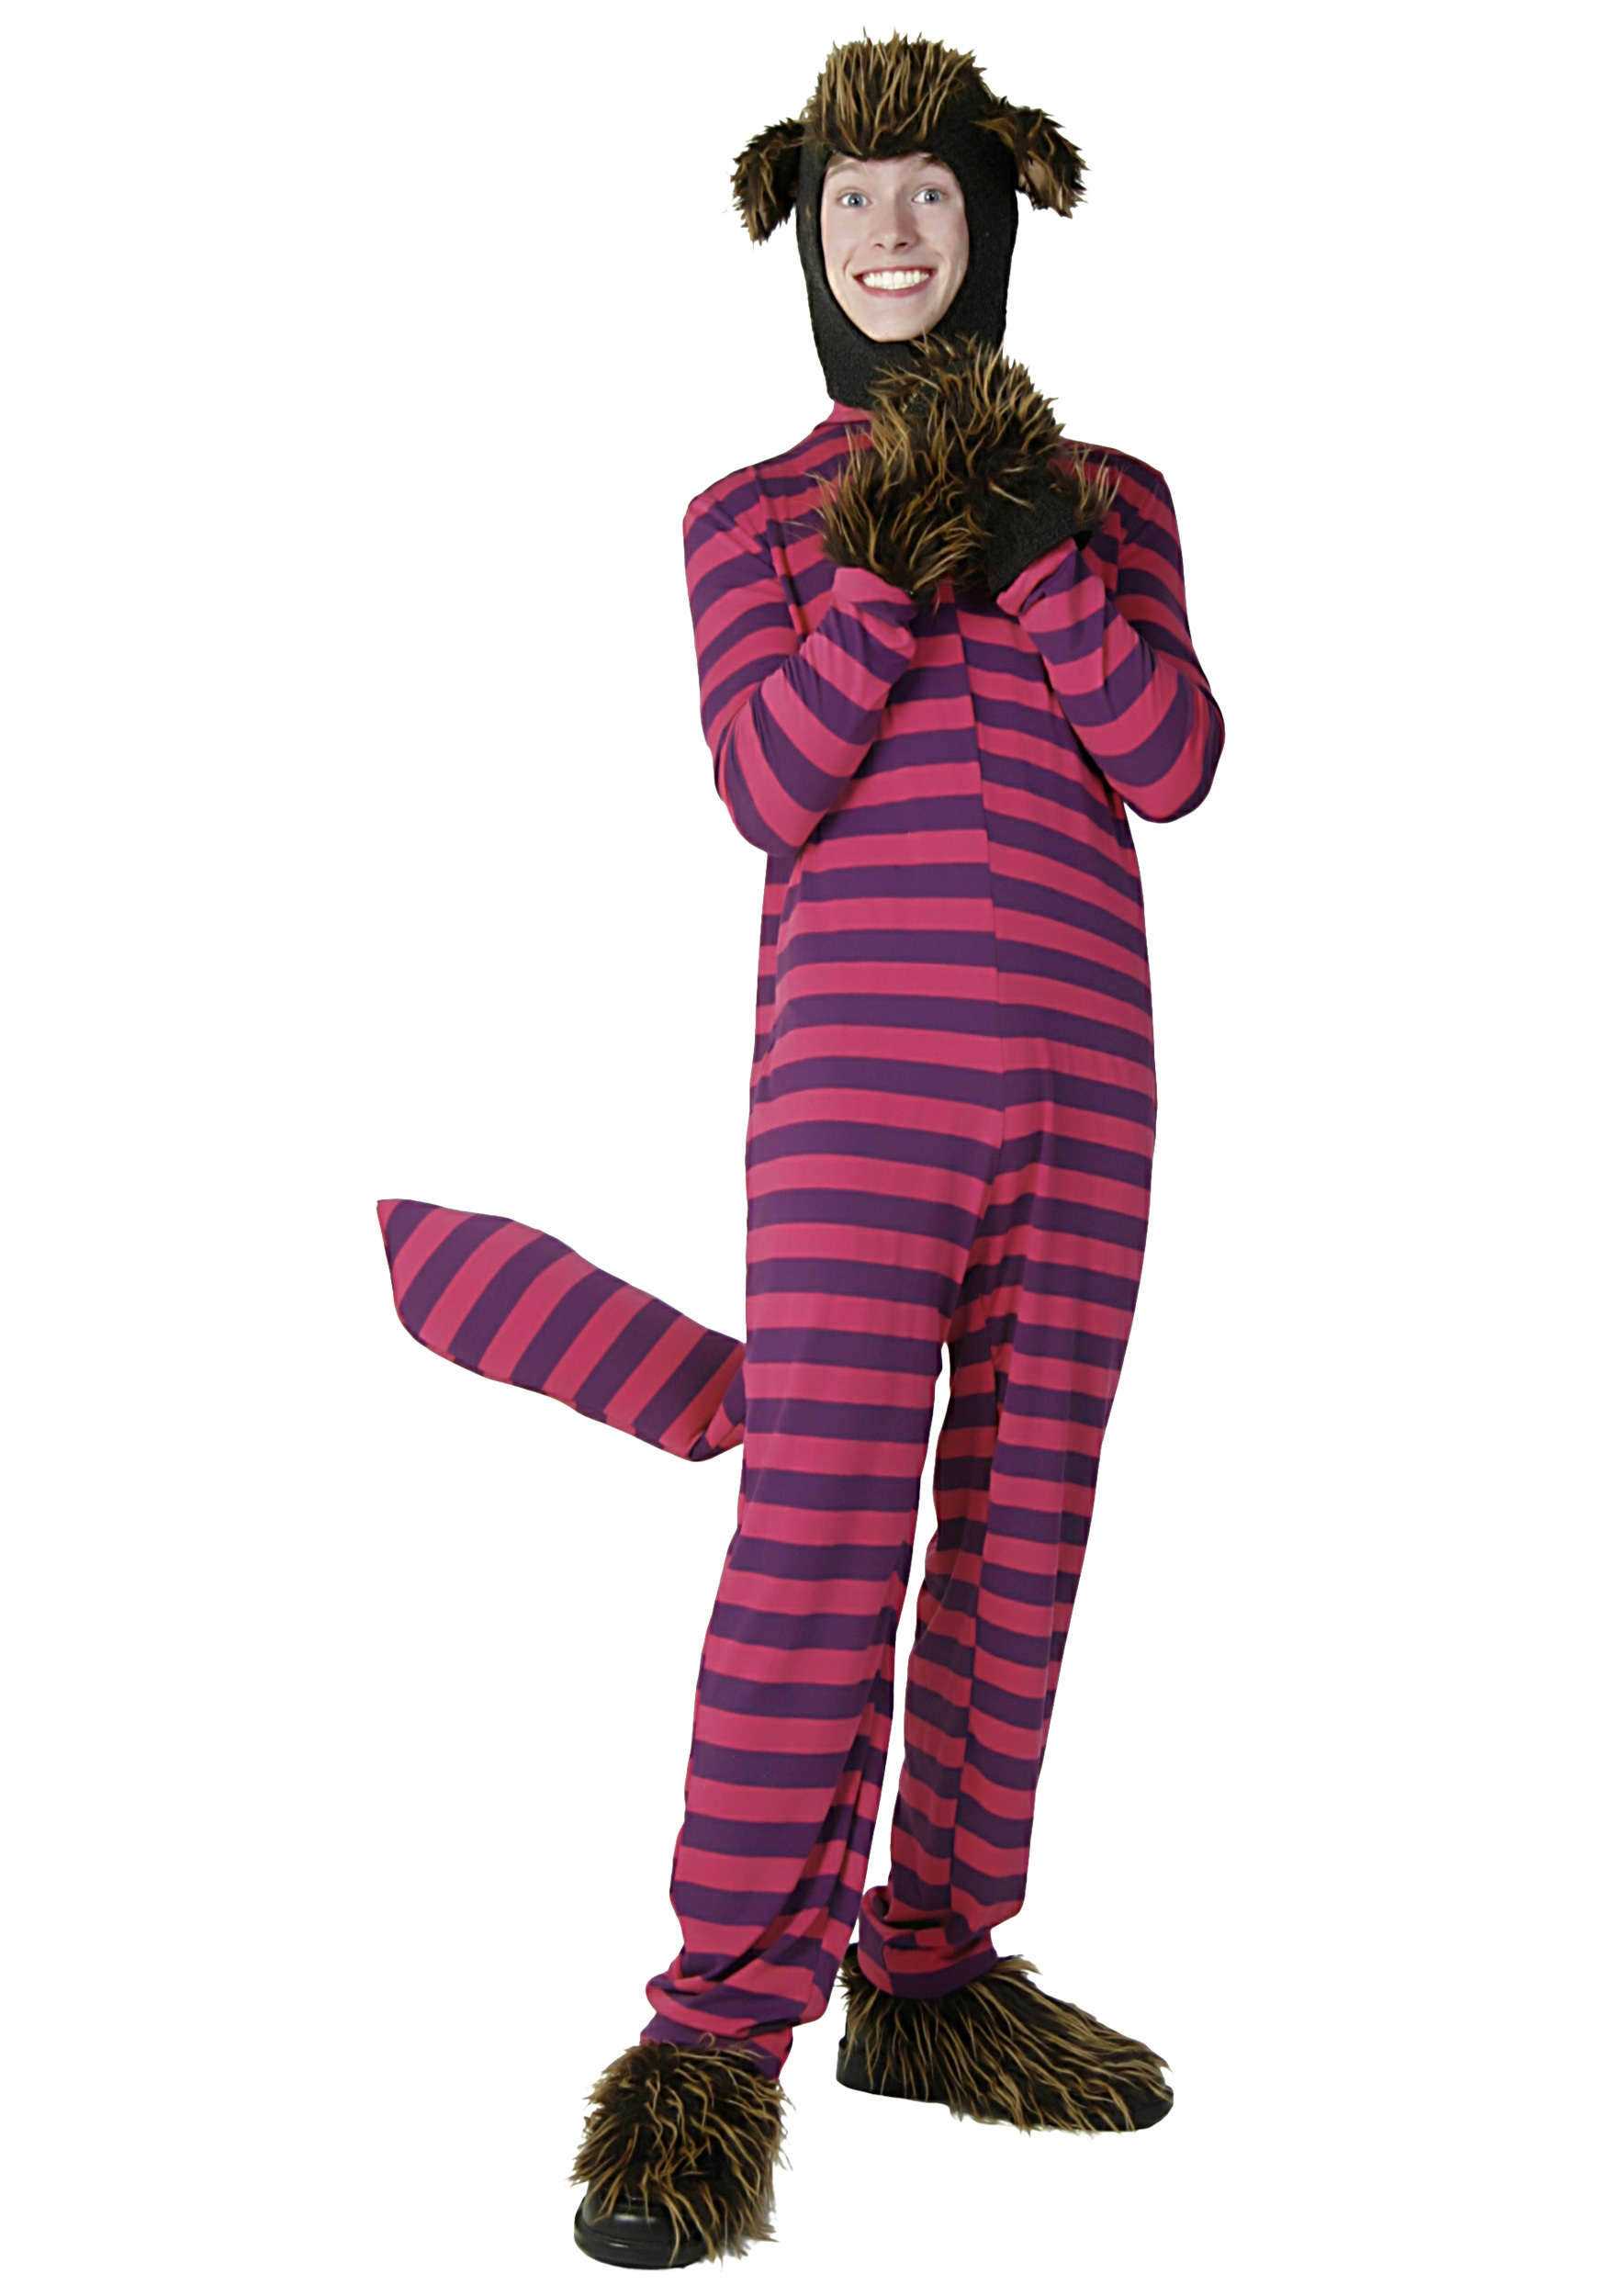 cheshire girls Cheshire cat girl with blonde hair cheshire cat girl with blonde hair 2 cat girl improved cheshire girl improved cheshire girl 1 cheshire cat cosplay girl.